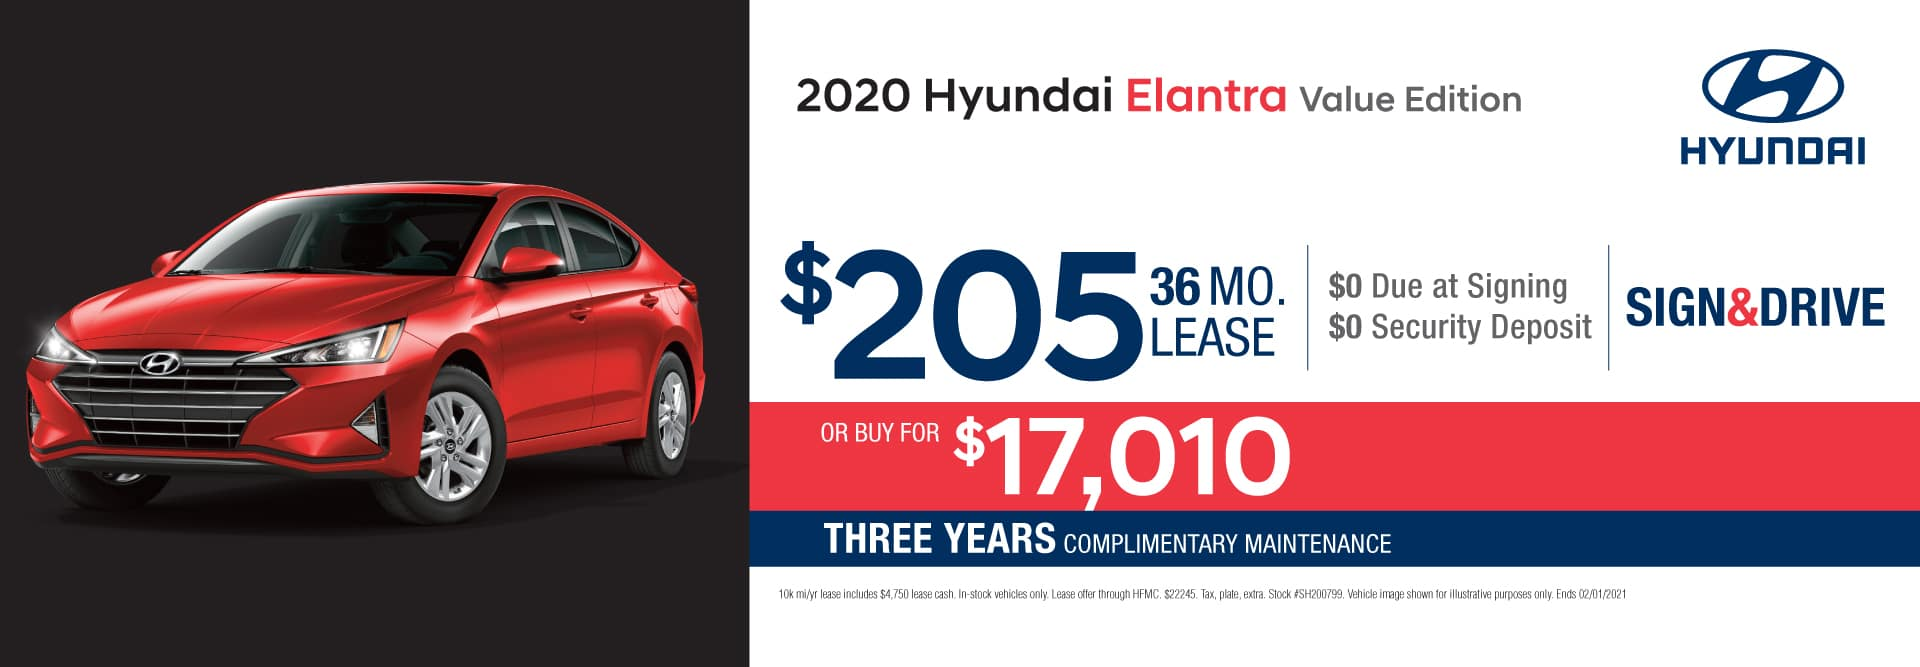 2021-january-elantra-updated